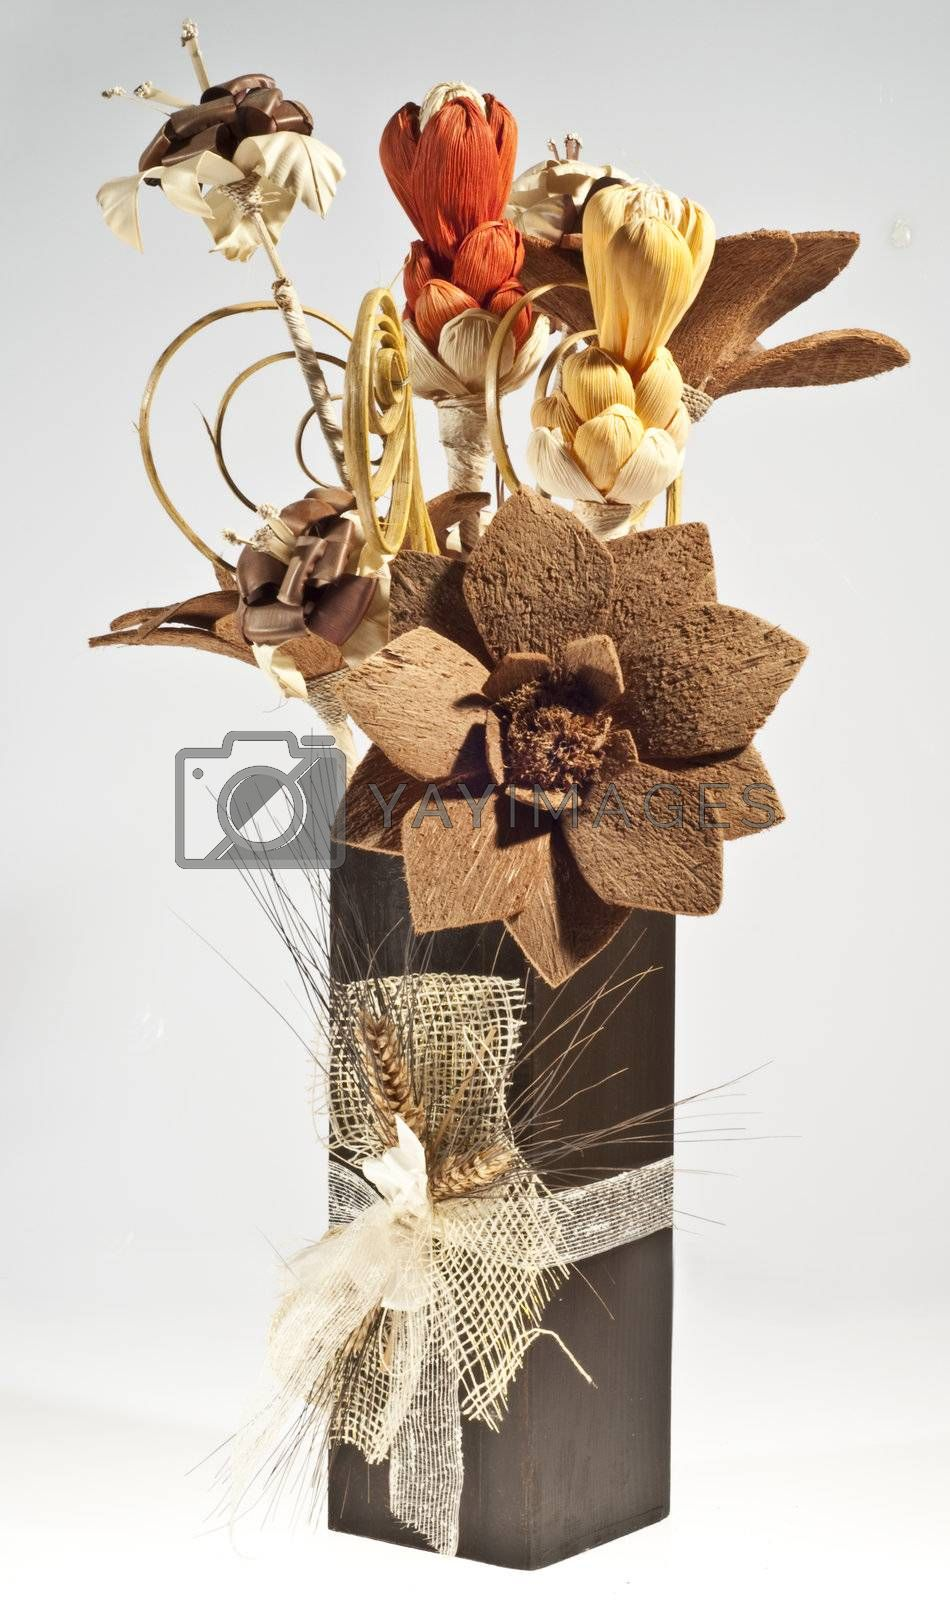 cork and composition of flowers in a vase decorated with rice paper